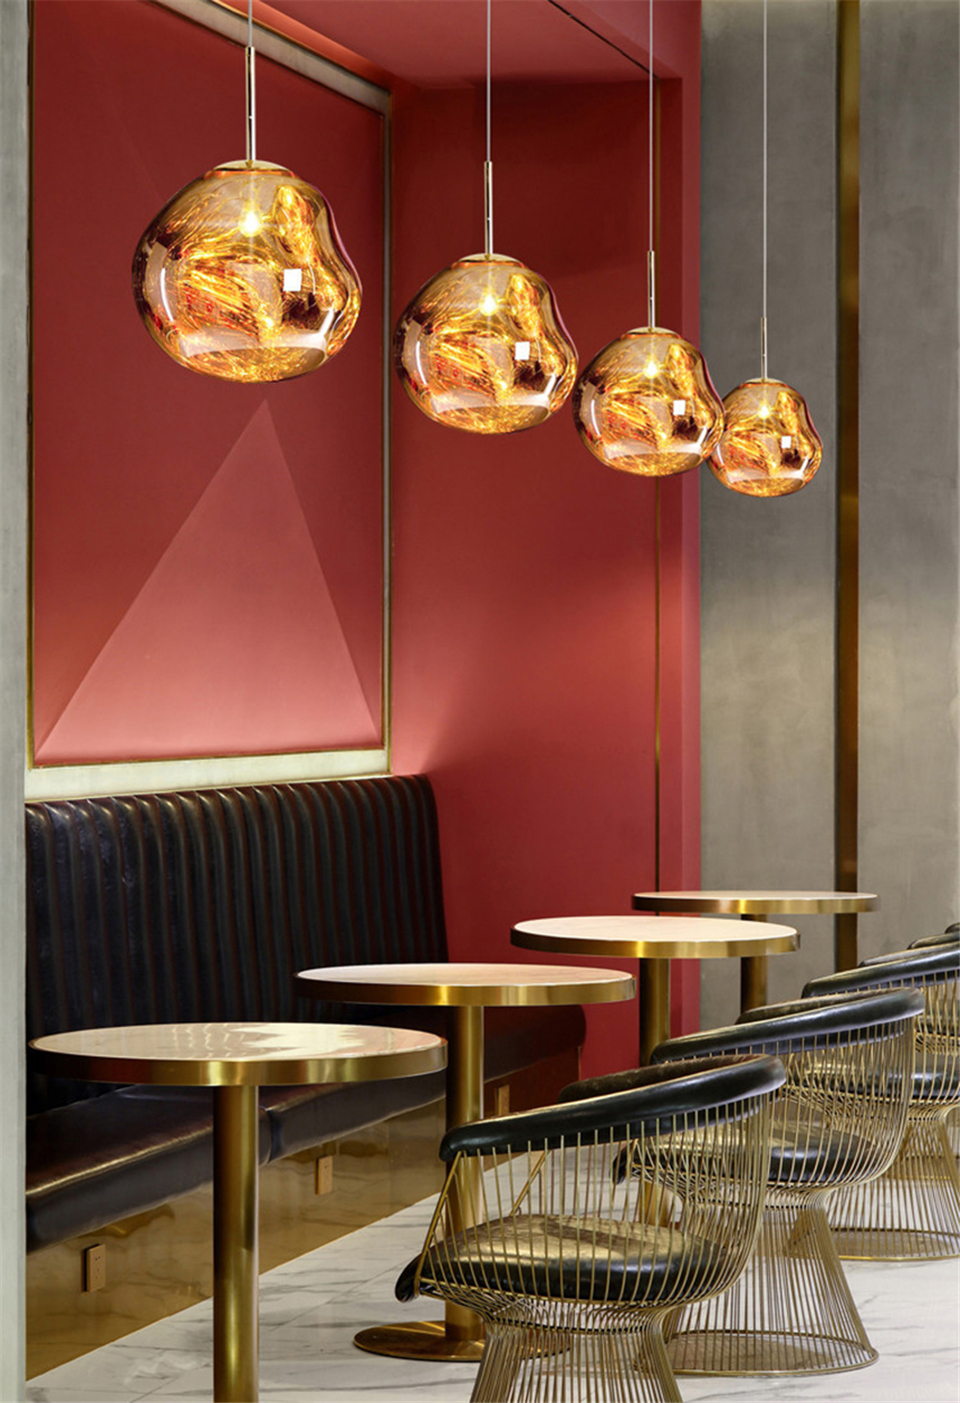 Geovancy Lava Pendant Lights use